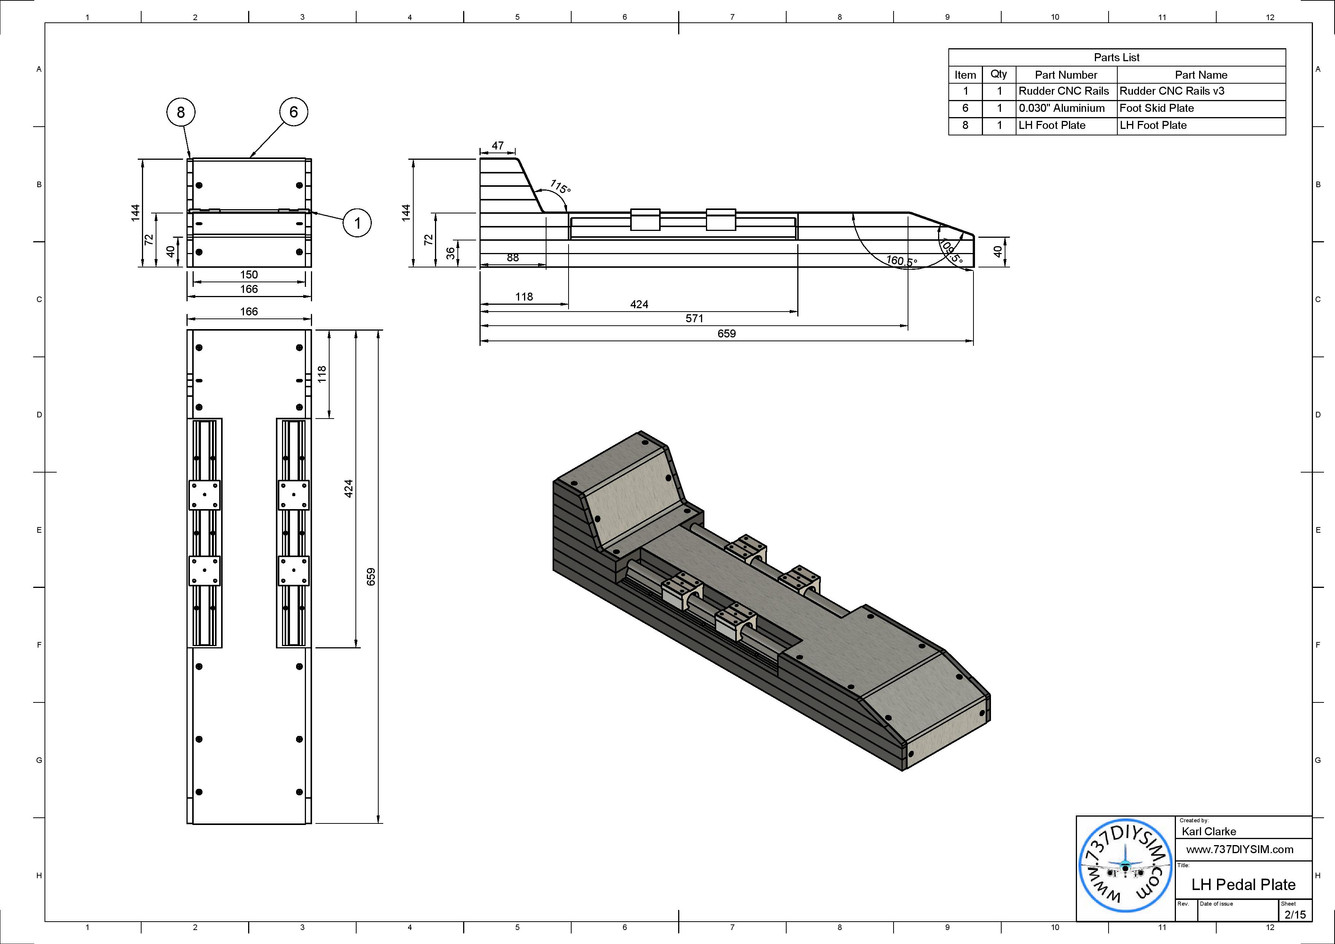 LH Pedal Plate Drawing v1-page-002.jpg